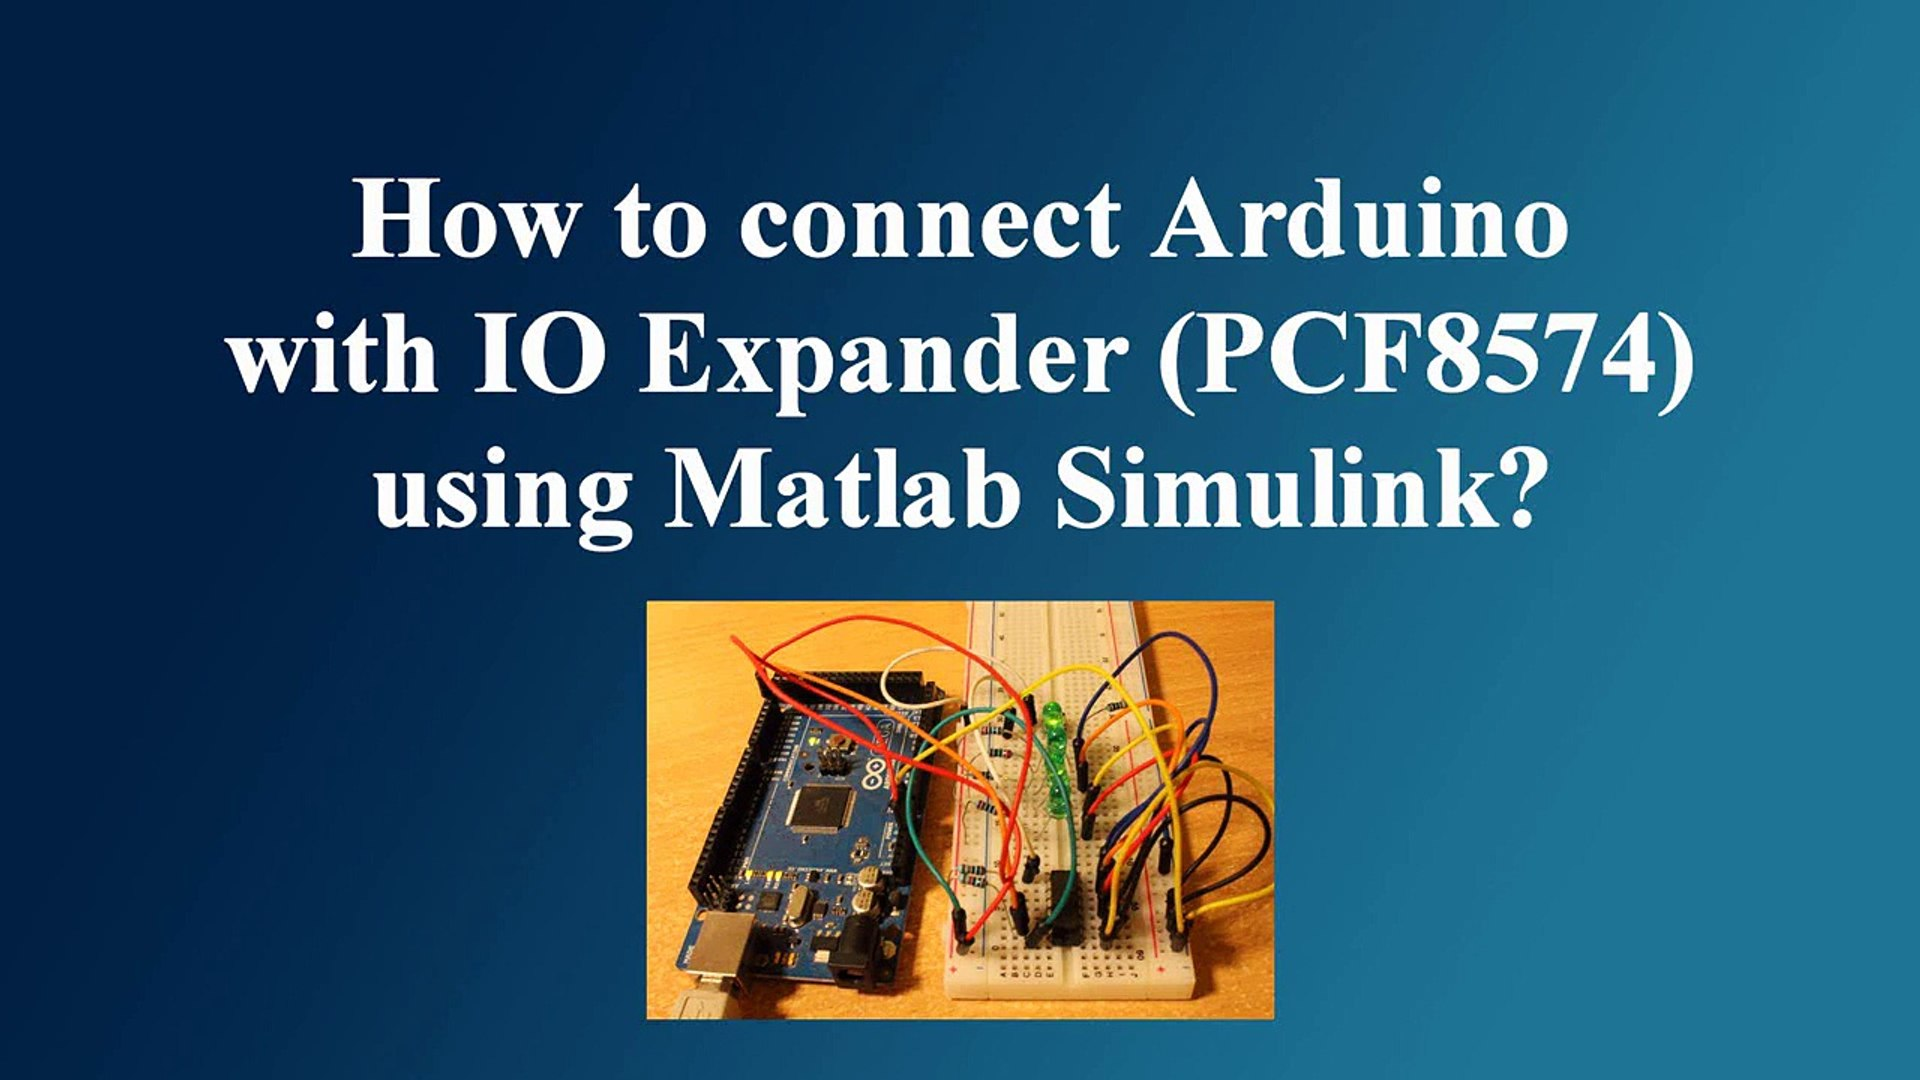 How to connect Arduino with IO Expander (PCF8574) using Matlab Simulink?